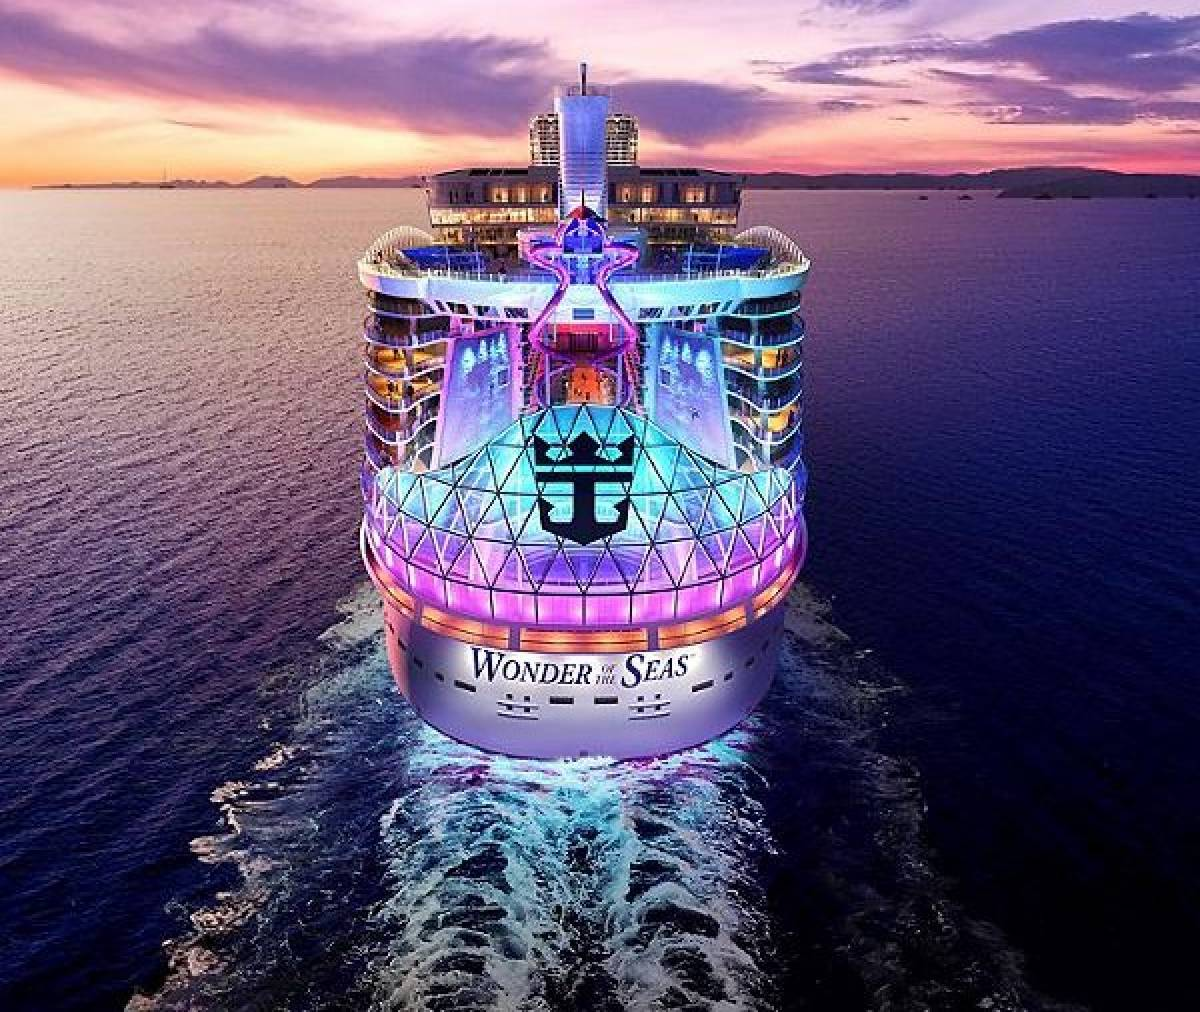 When Royal Caribbean Launches Wonder of the Seas it will be the World's Largest Cruise Ship